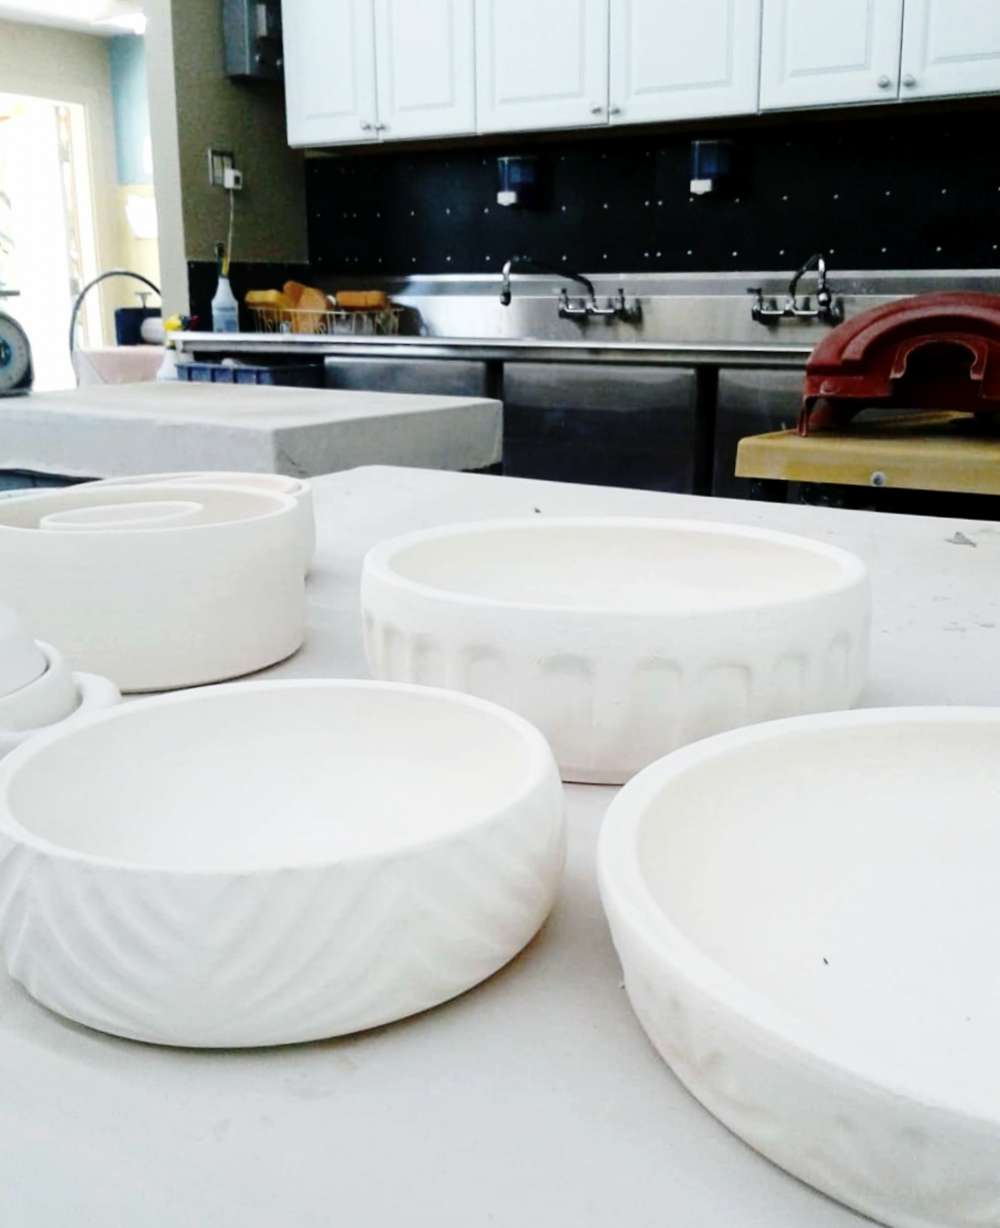 A collection of faceted and carved pottery bowls, cups, and mugs made in Austin, Texas, by Little Clay Studio.